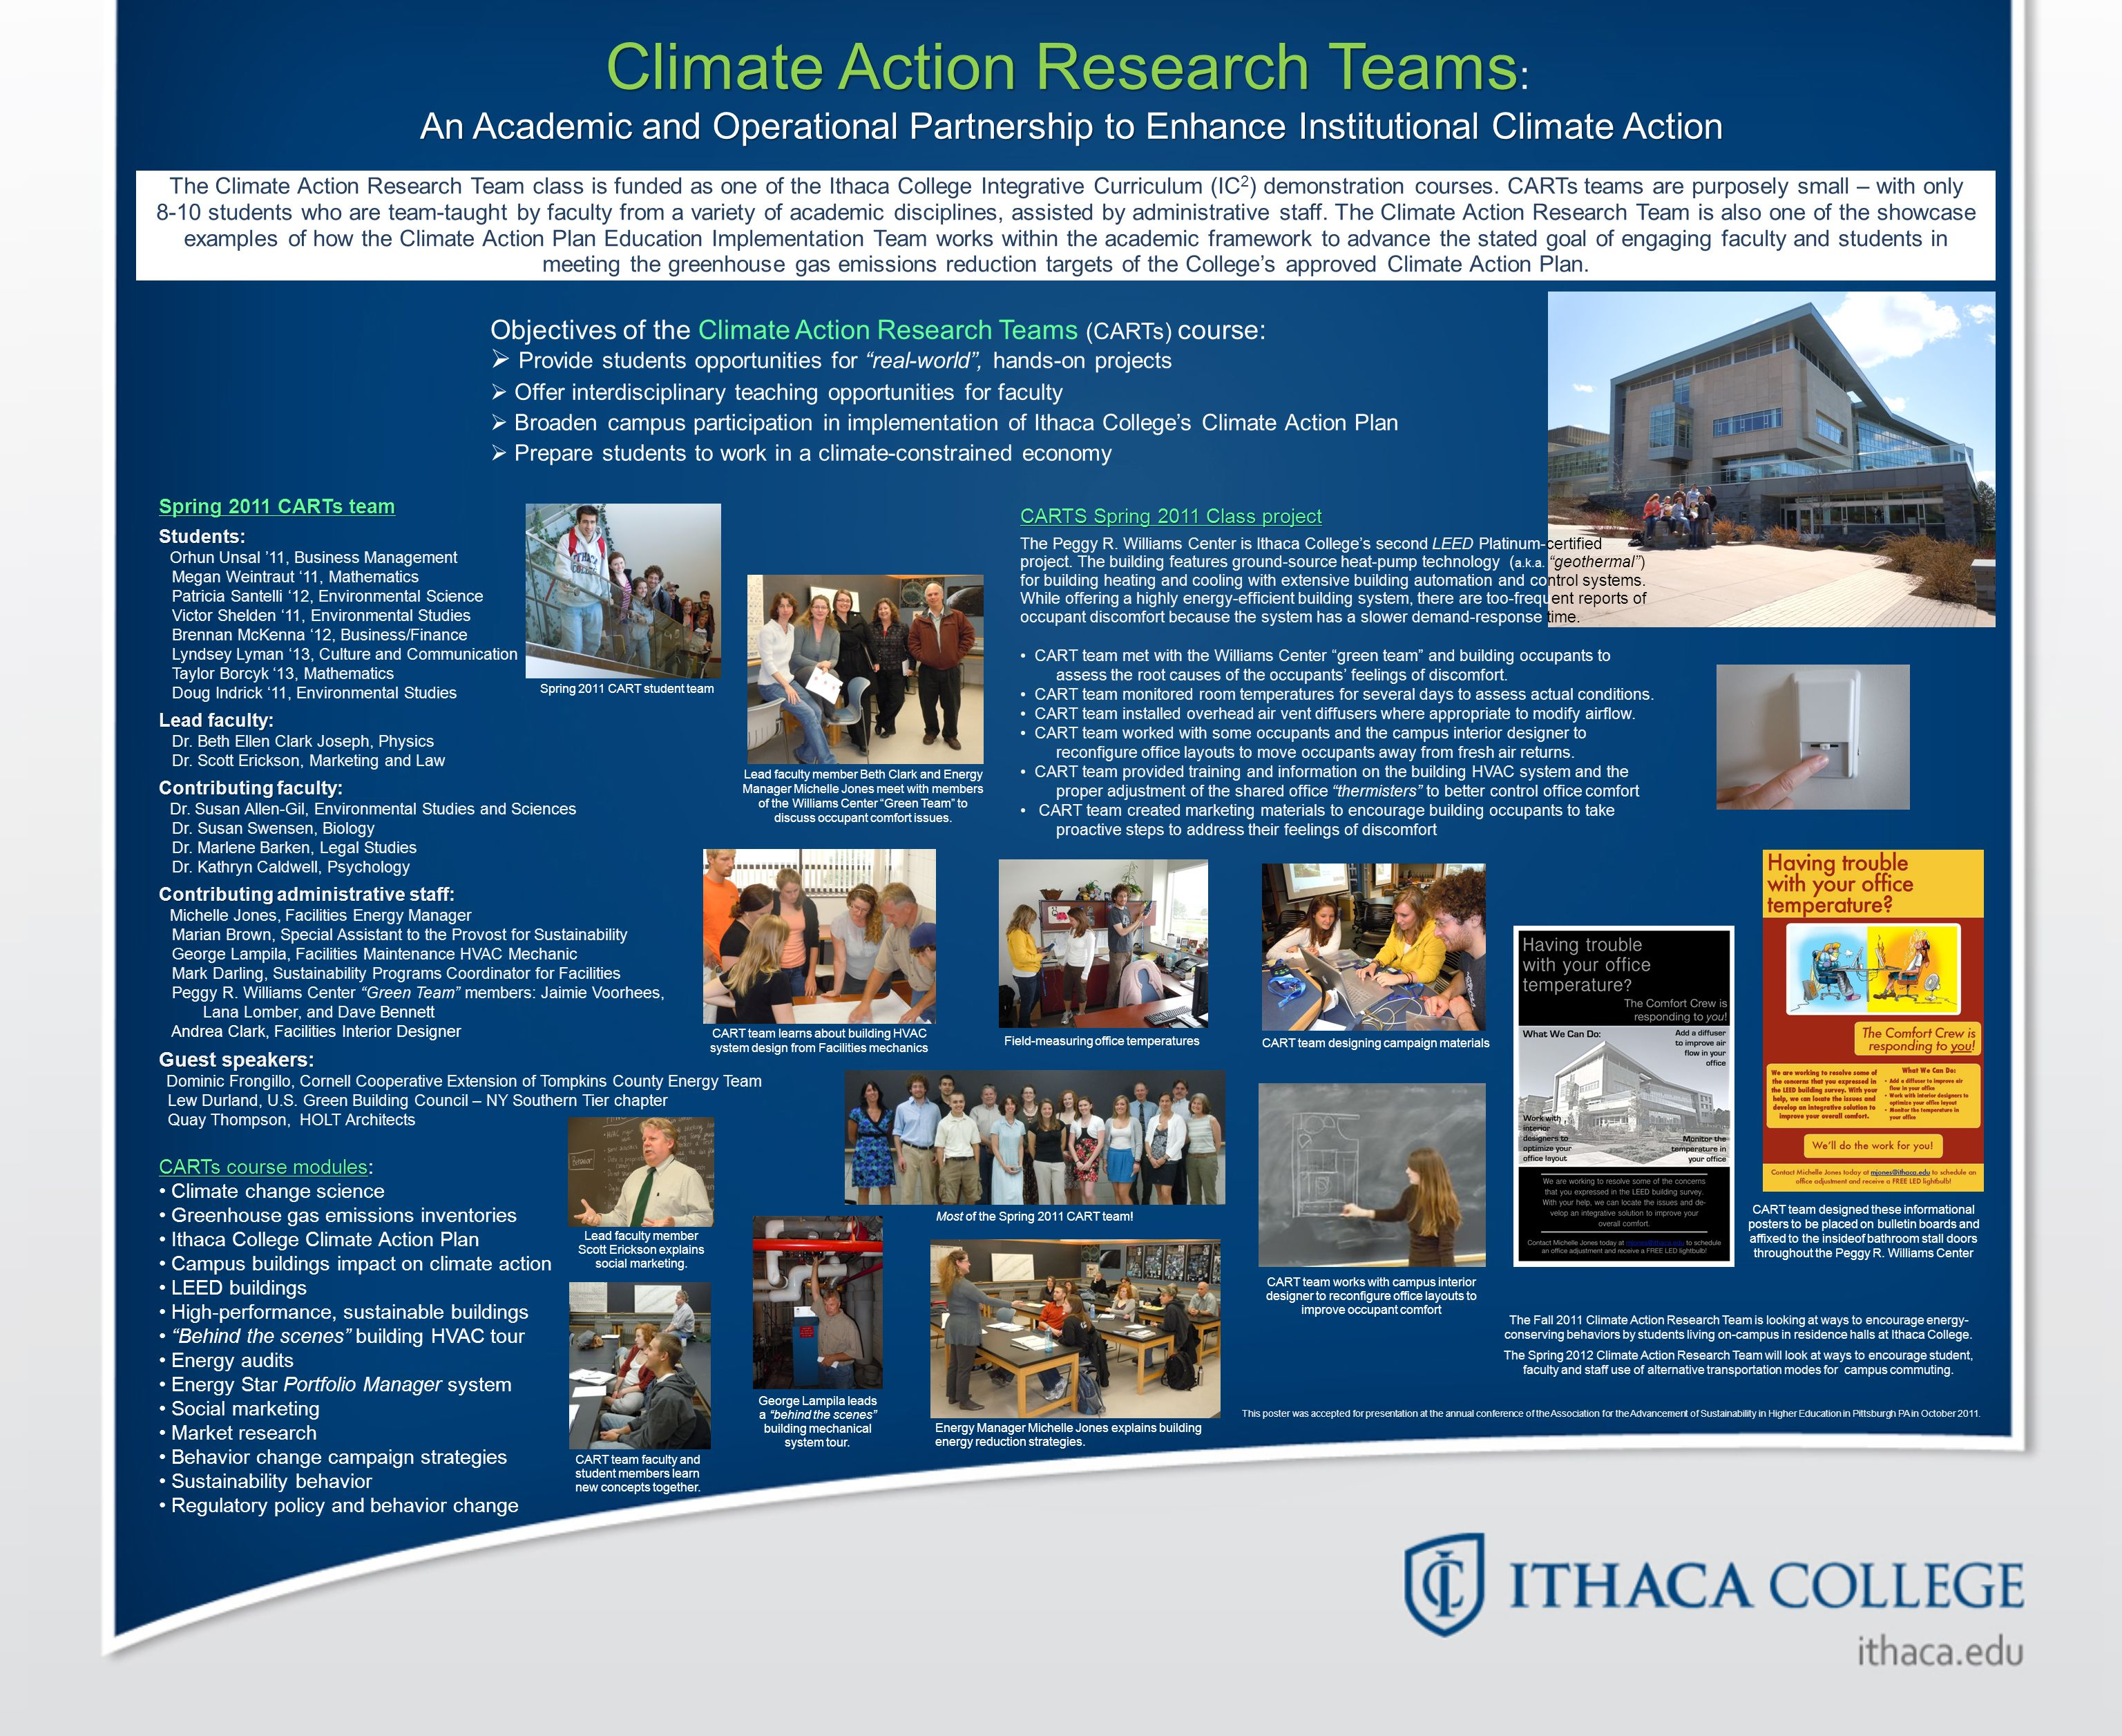 Climate Action Research Teams An Academic and Operational Partnership to Enhance Institutional Climate Action Climate Action Research Teams : An Academic and Operational Partnership to Enhance Institutional Climate Action The Climate Action Research Team class is funded as one of the Ithaca College Integrative Curriculum (IC 2 ) demonstration courses.